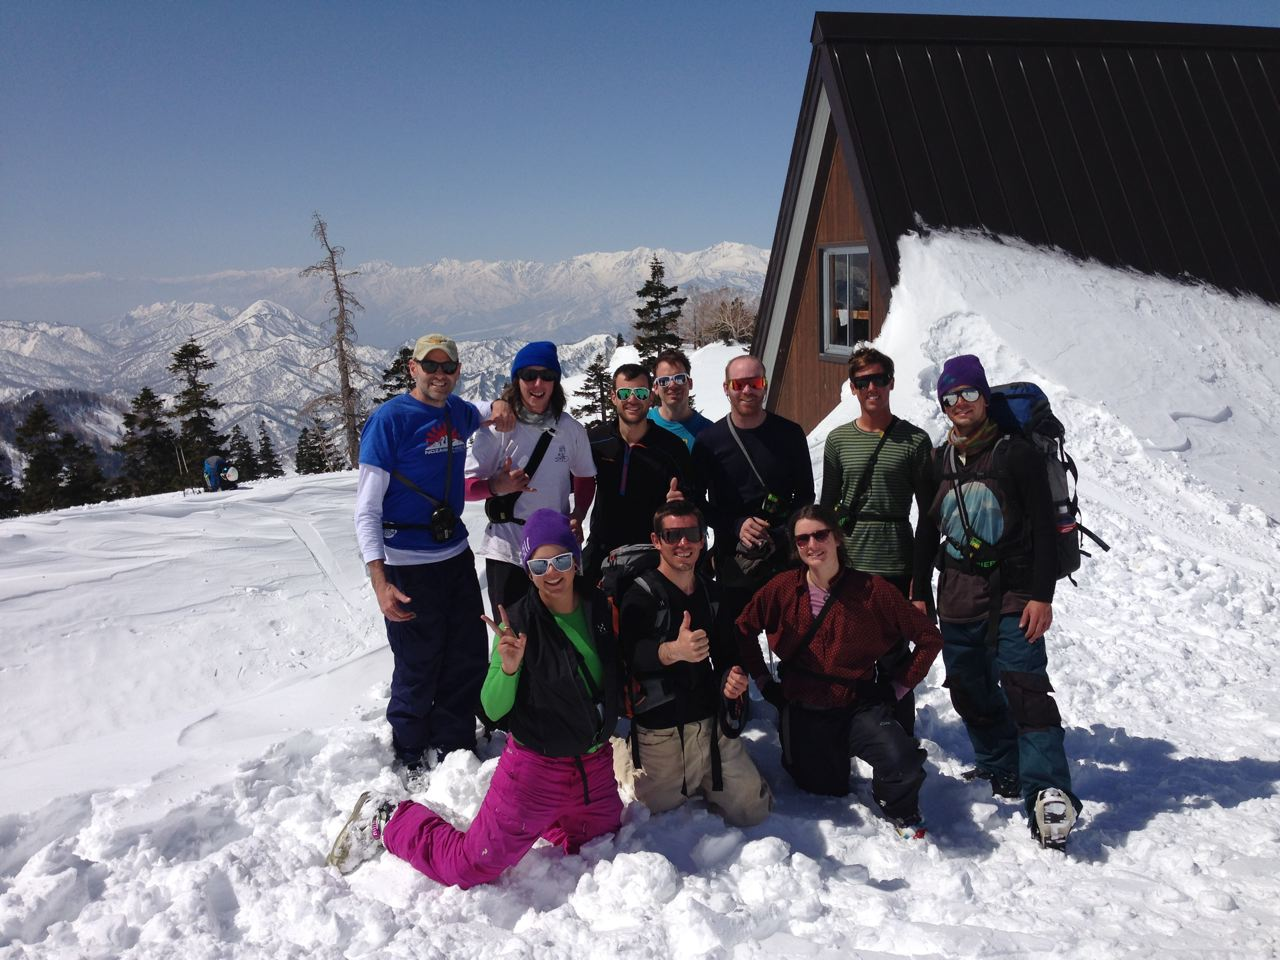 The Nozawa Holidays gang enjoying the views from the hut before taking off